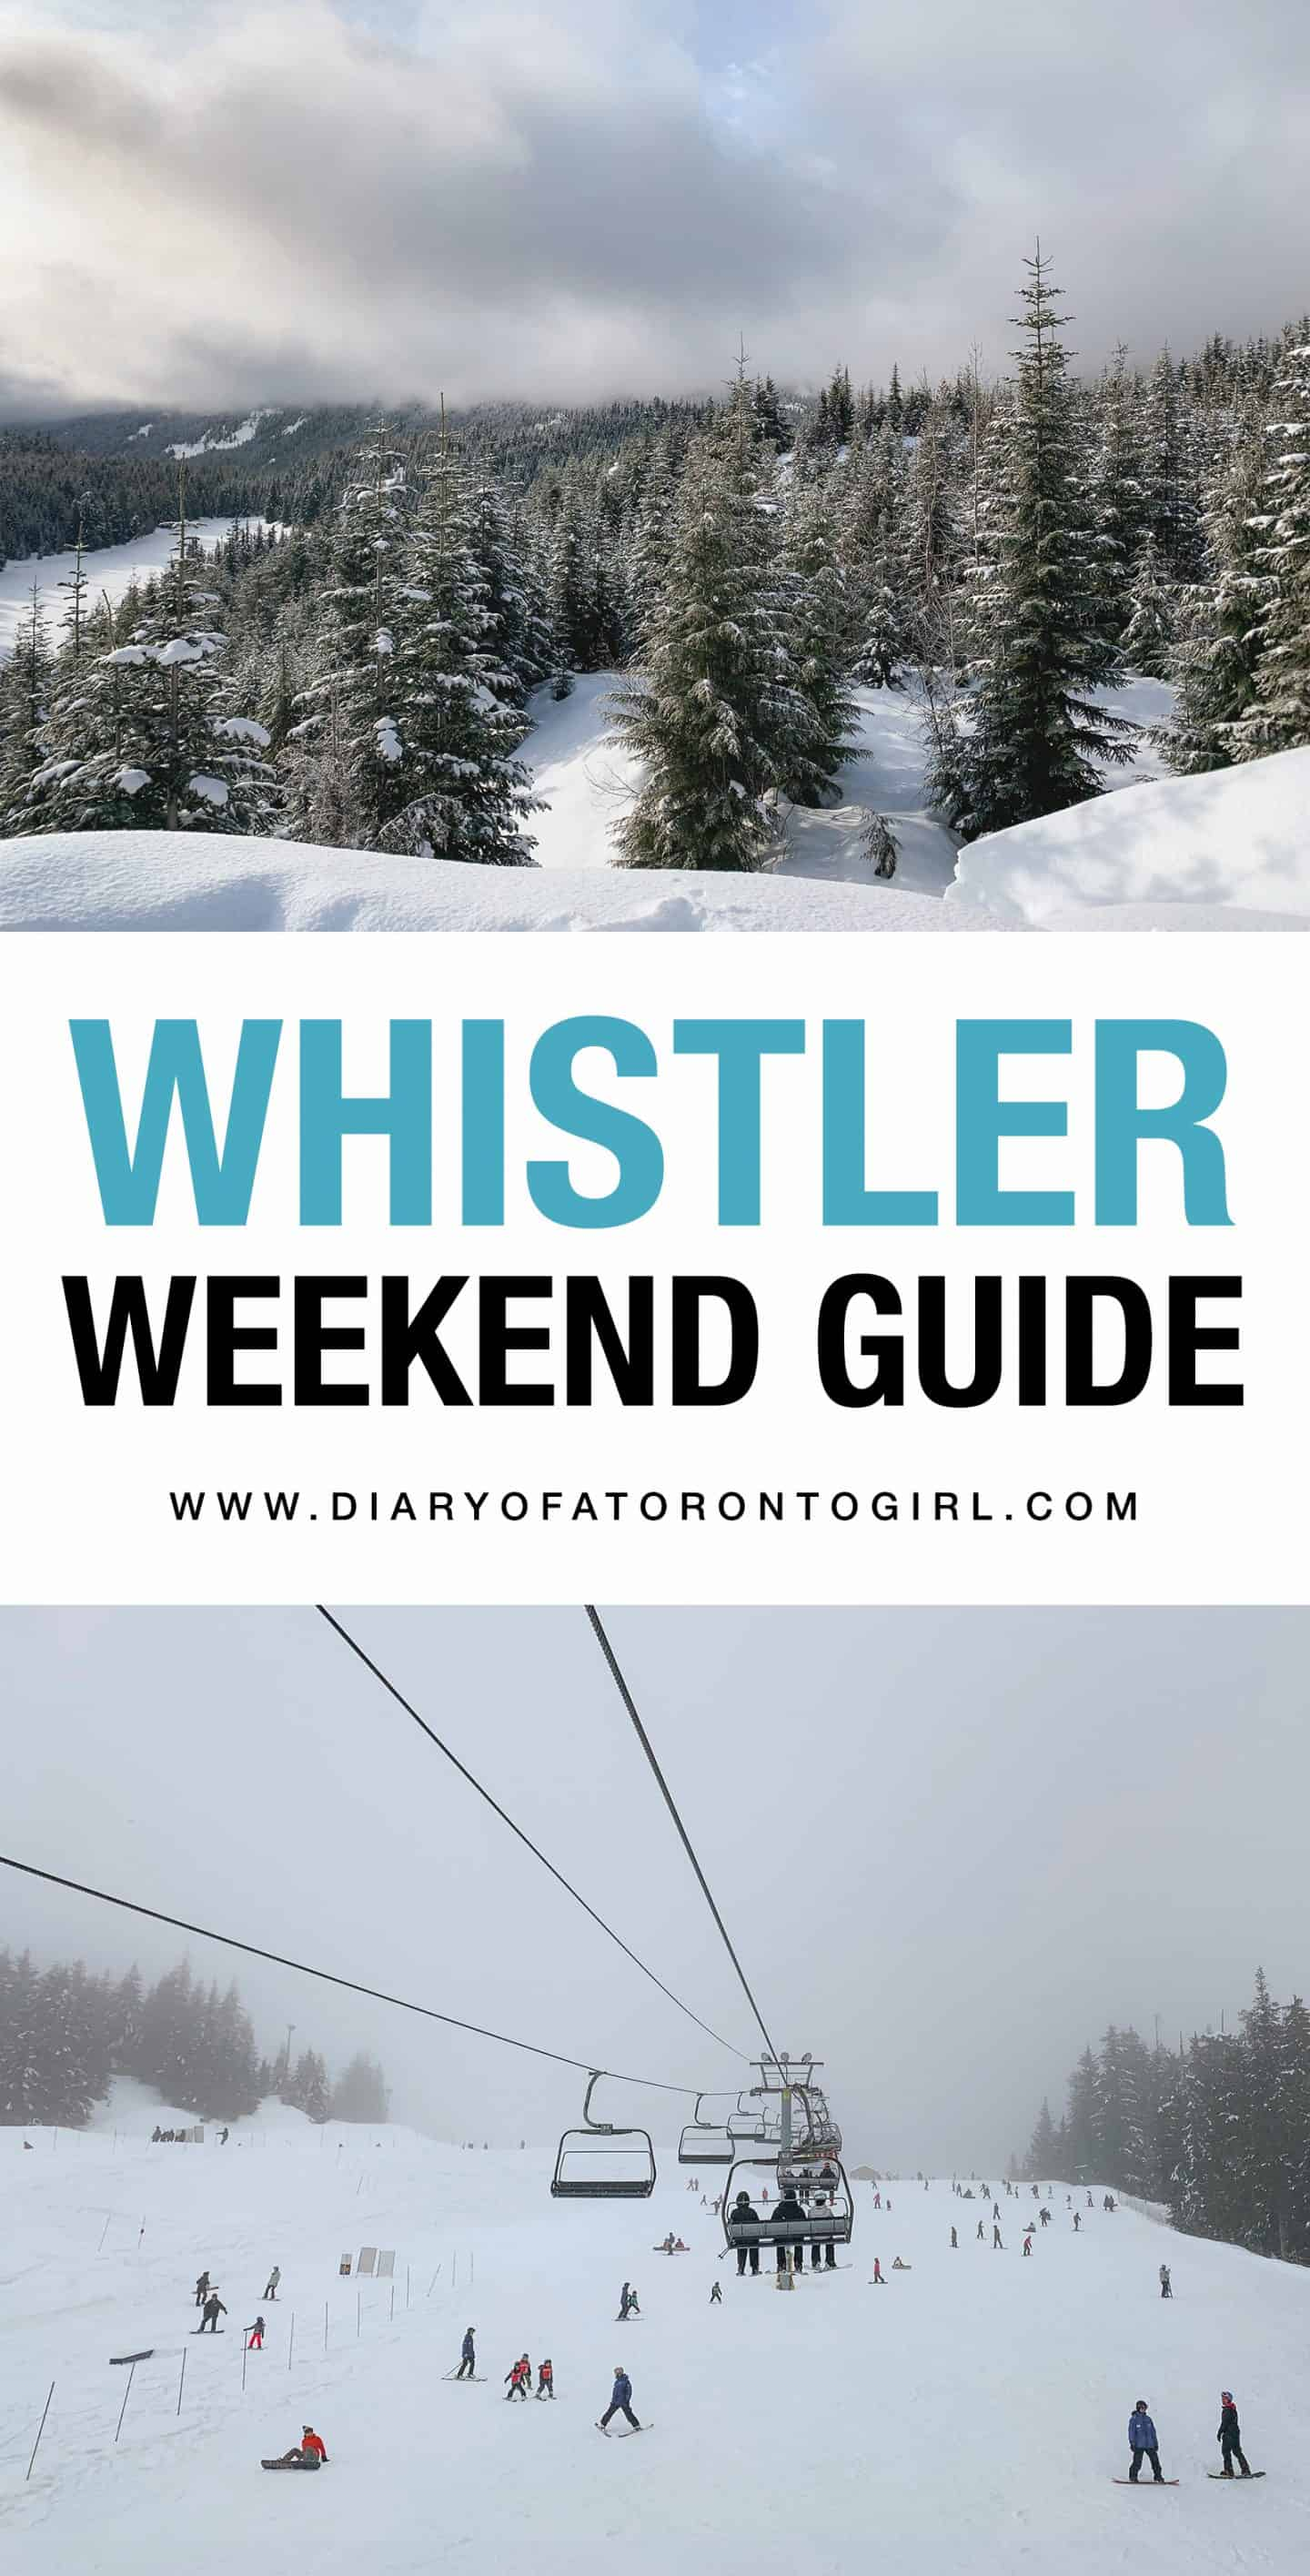 The ultimate guide on how to spend a winter weekend in Whistler, British Columbia!